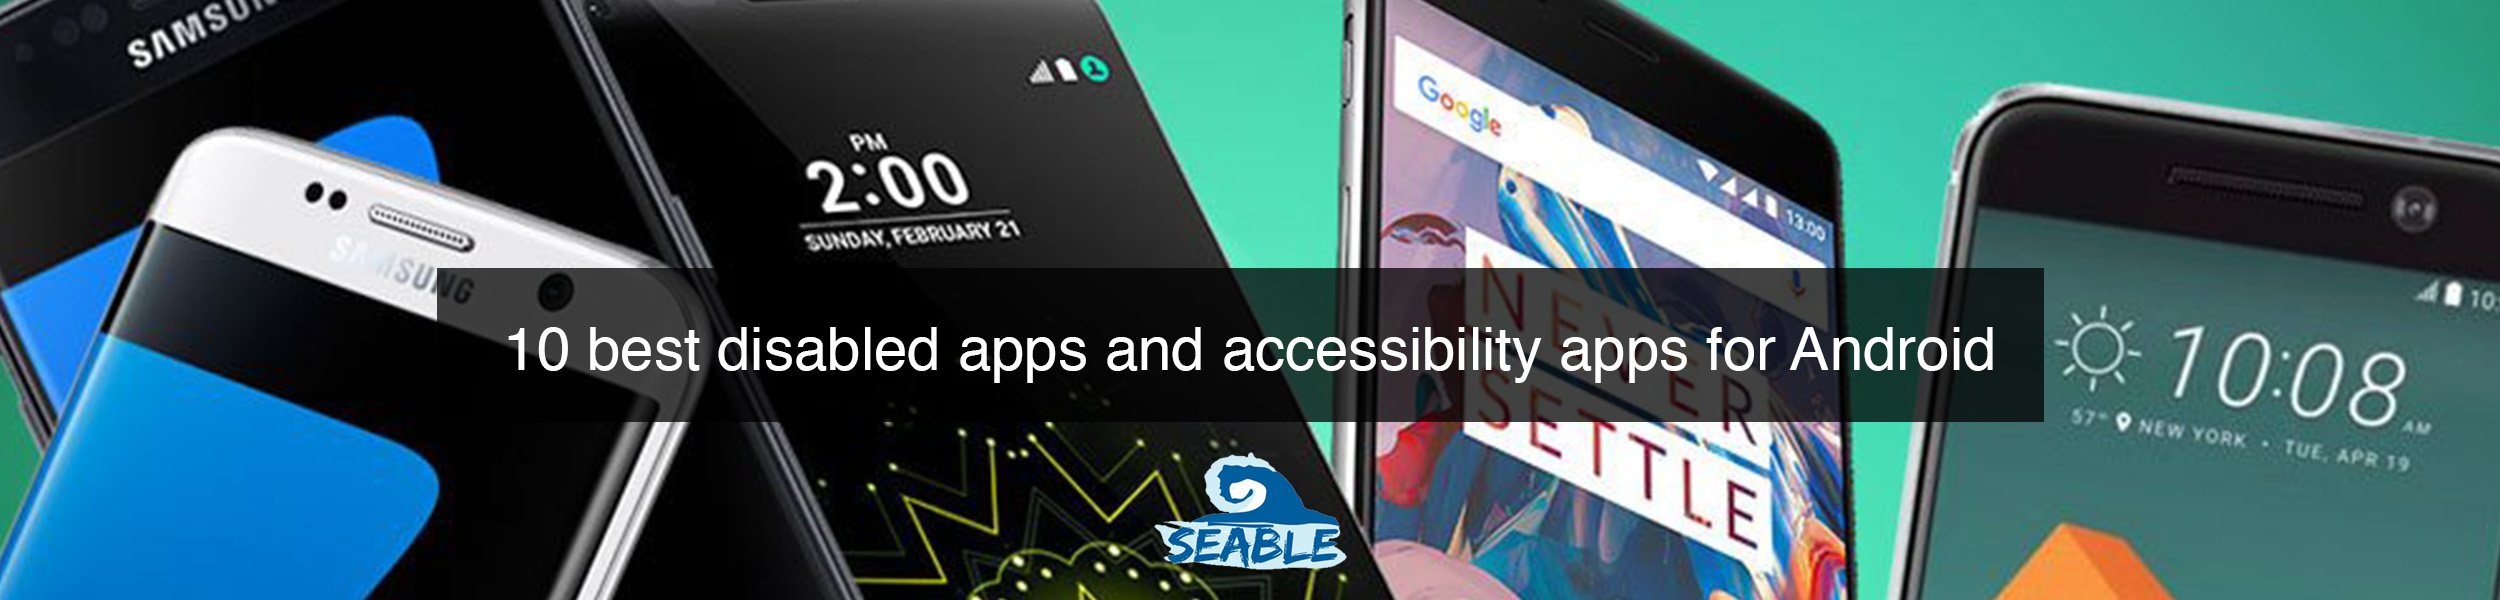 10 disabled apps accessibility apps Android